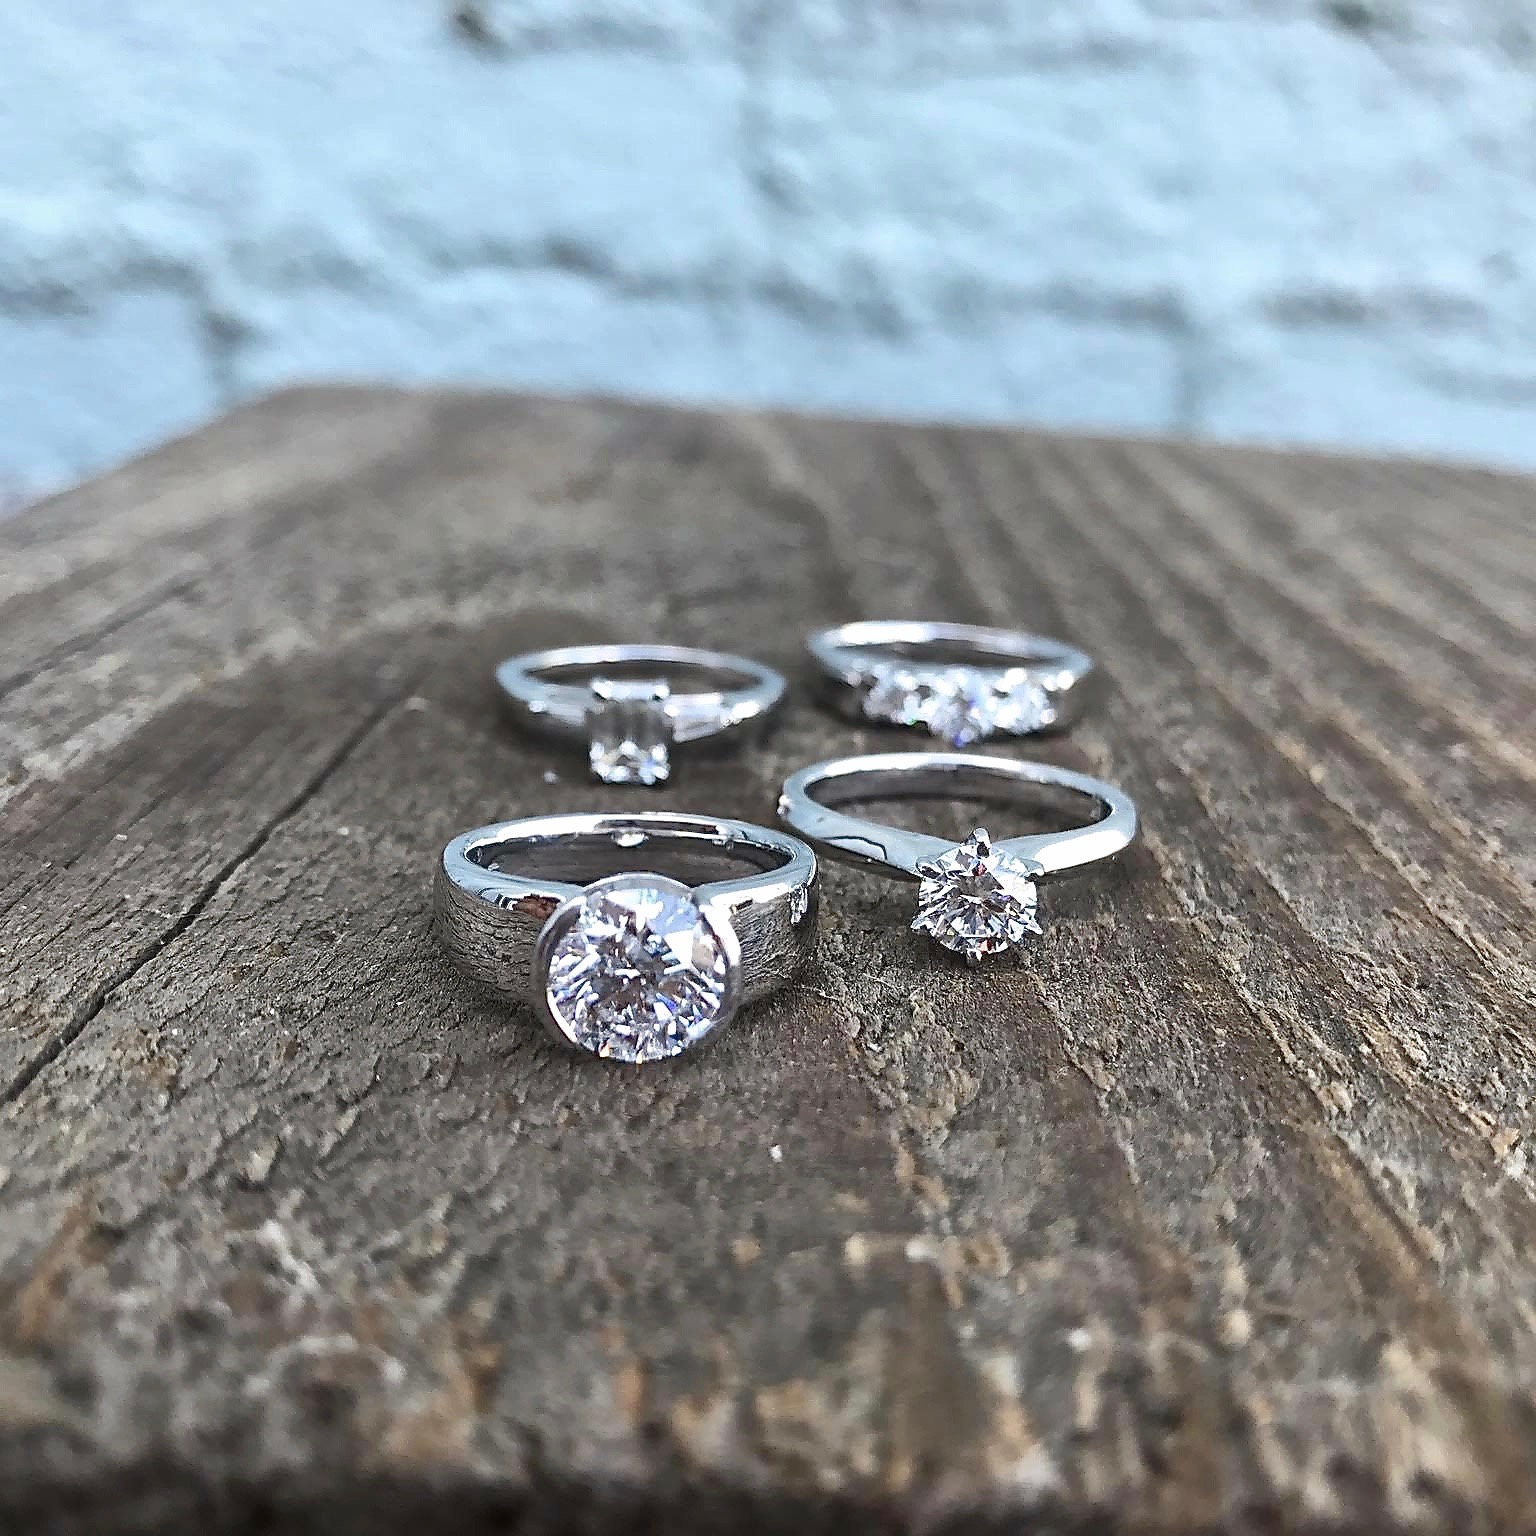 Engagement Rings custom made by pure envy